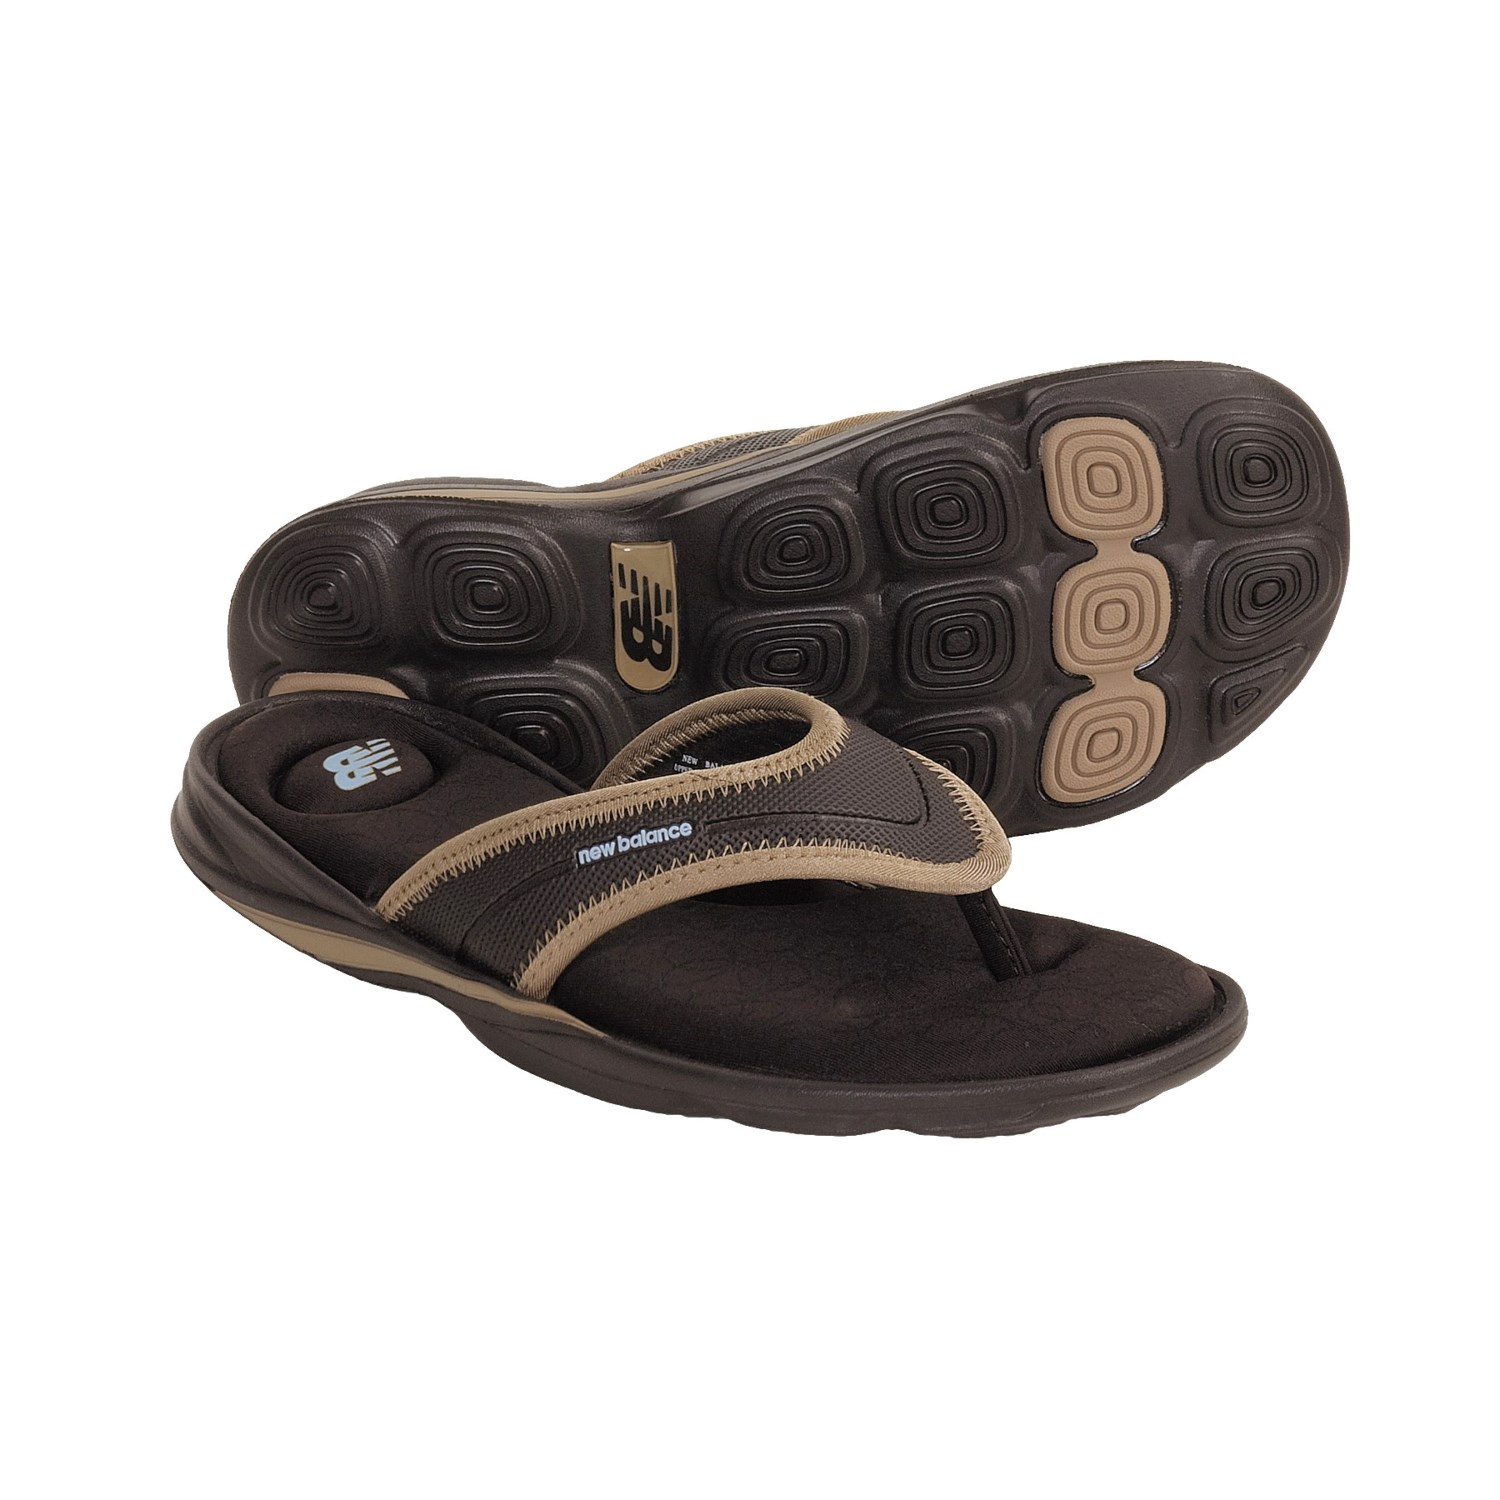 Awesome Up Your Casual Outfit With These New Balance Rev II Slide Sandals